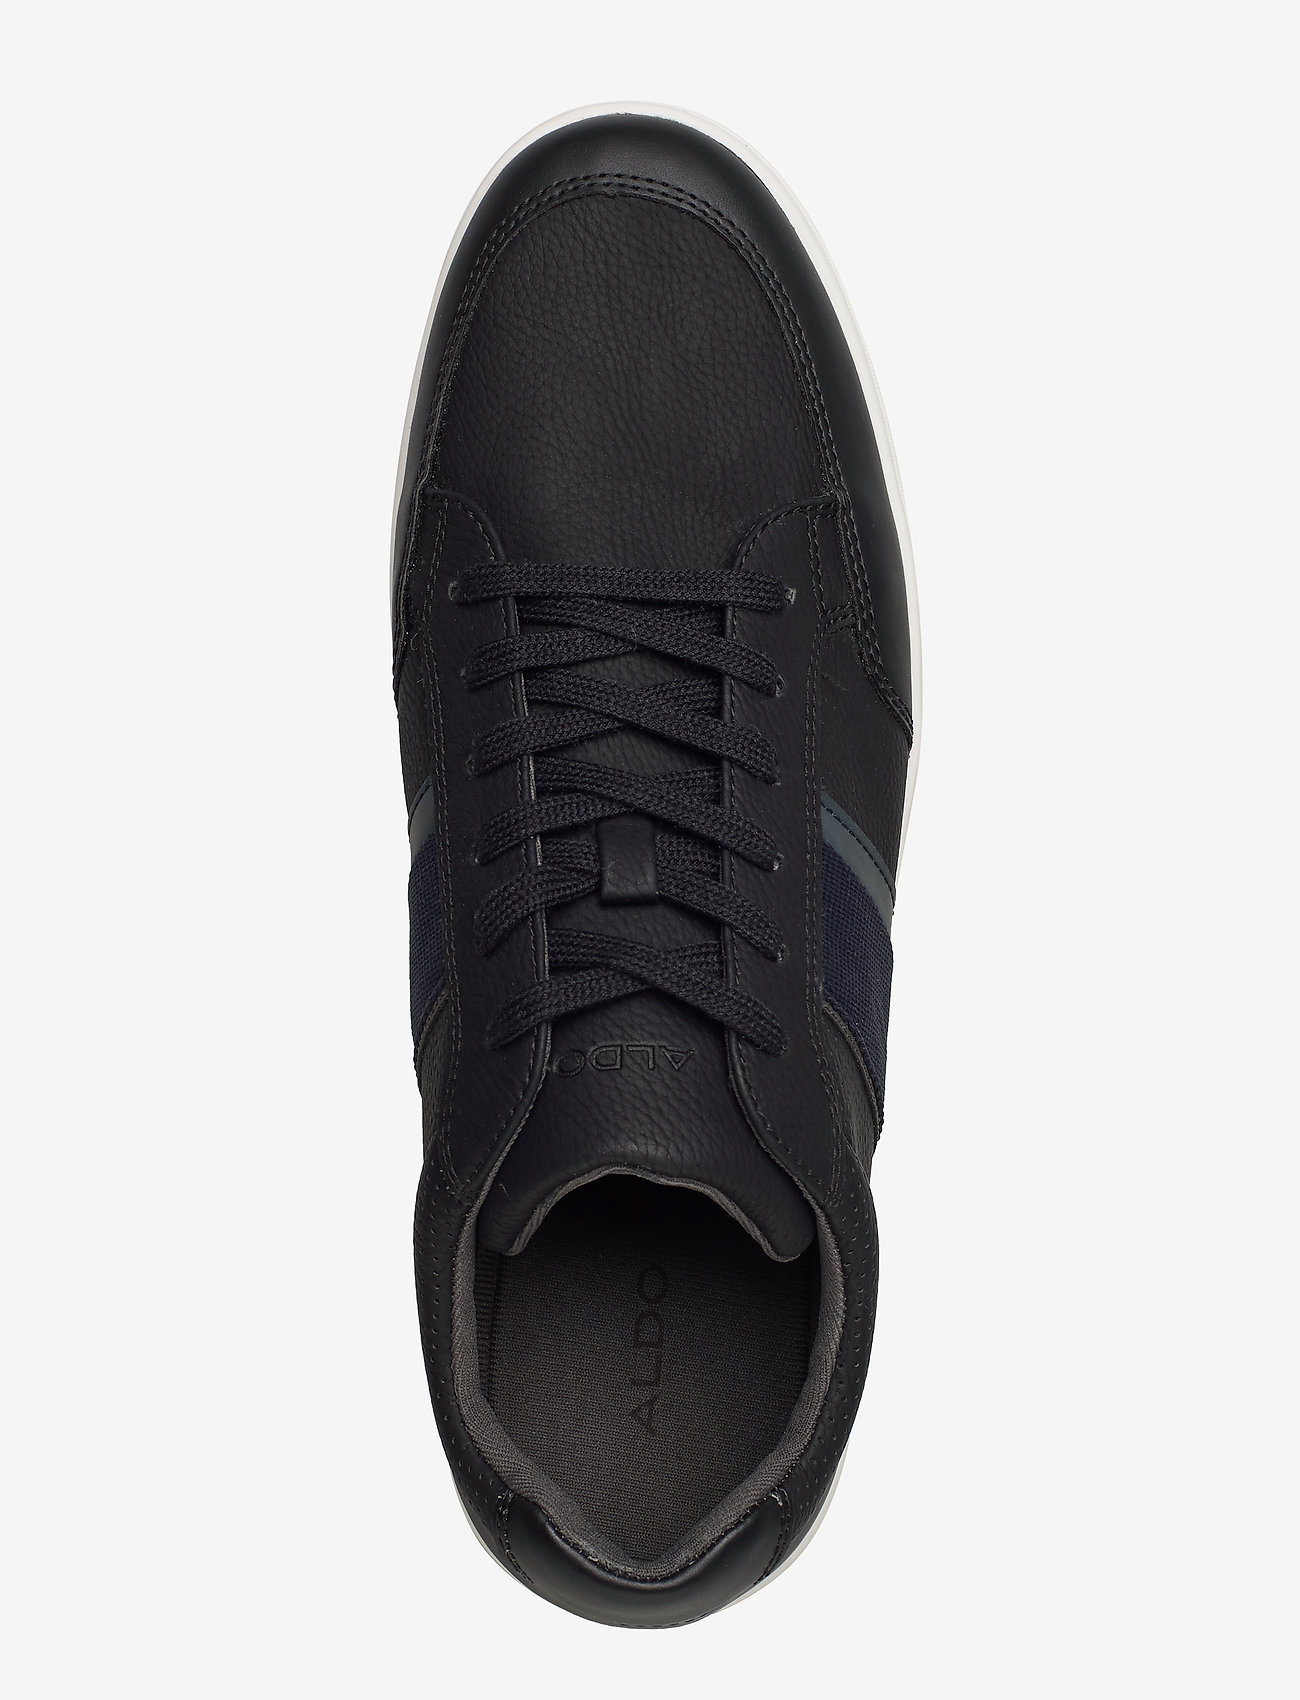 Aldo ASSIMILIS - Sneakers BLACK